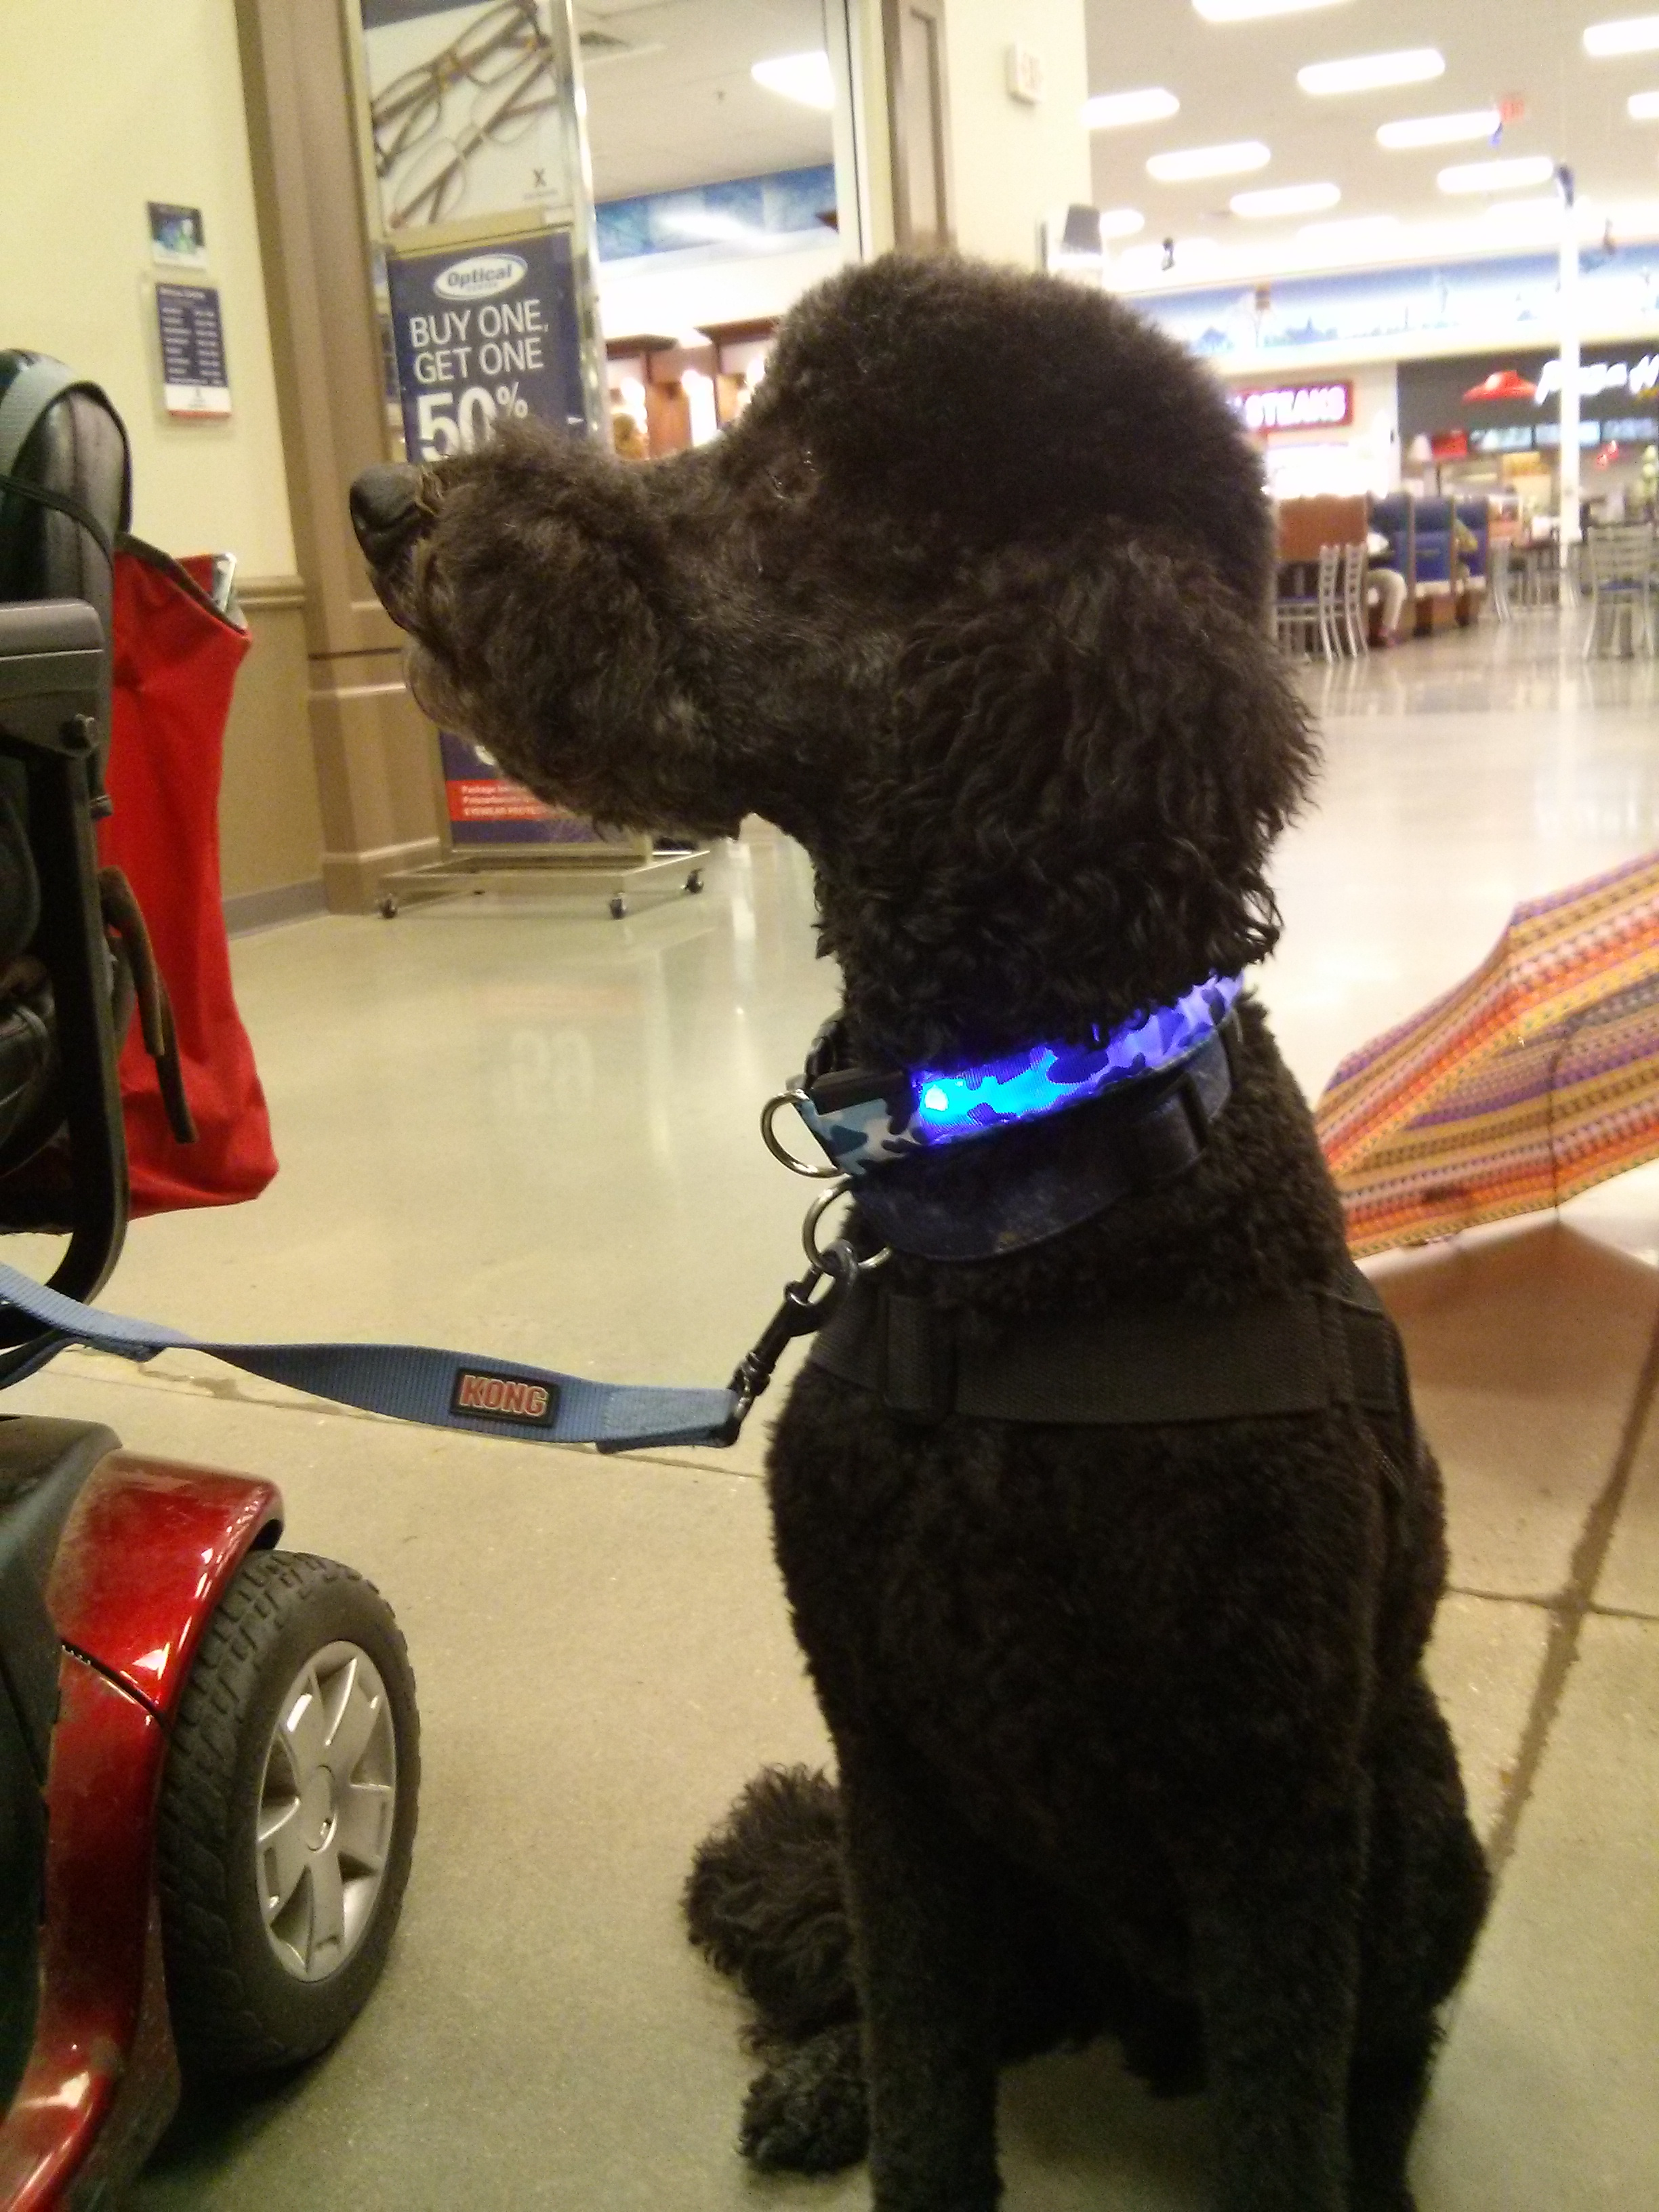 LED Dog Collar Distributed by Nikus, Fort Belvoir Army Base